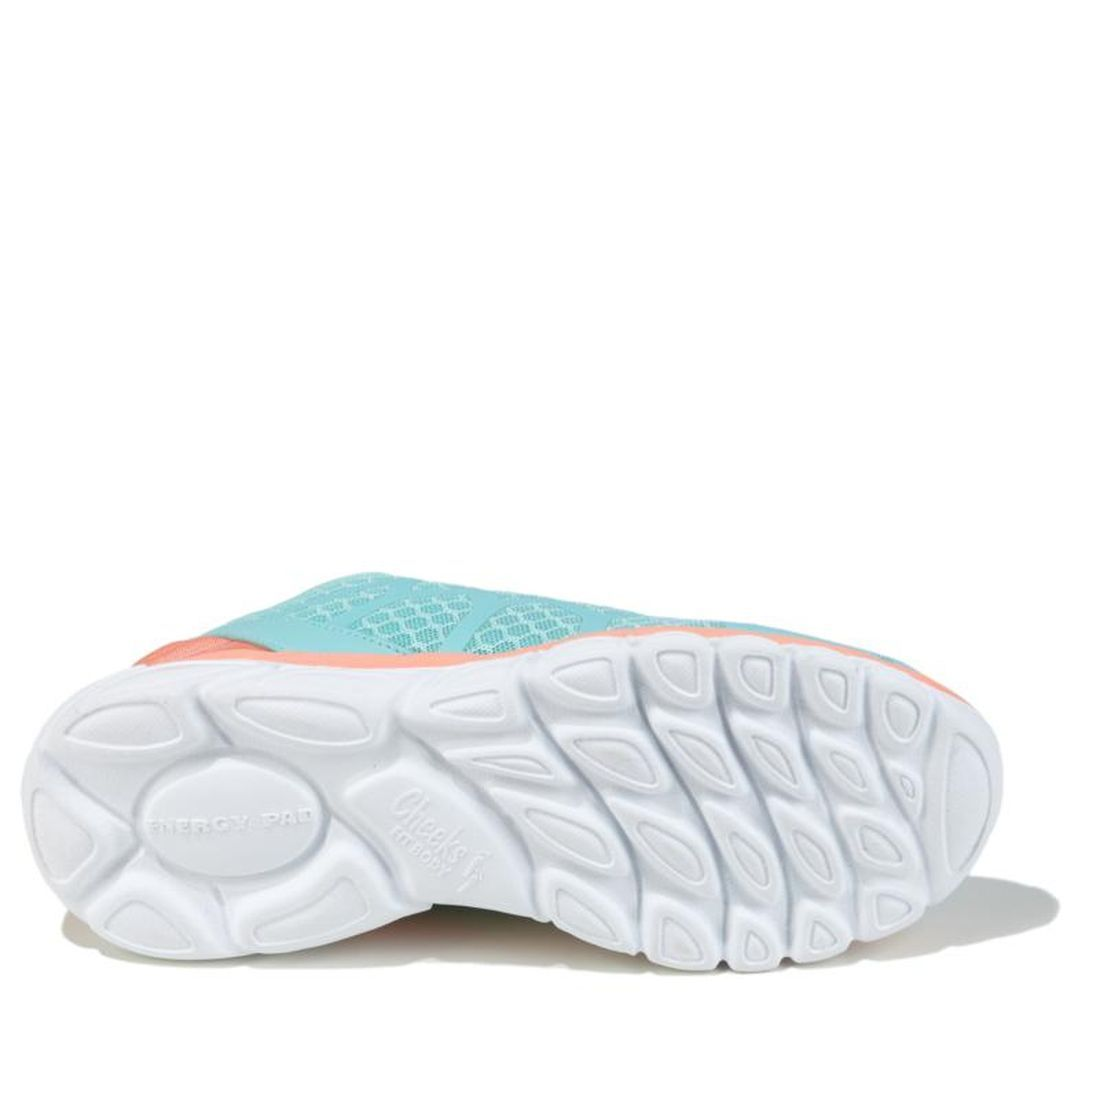 ec126d66cd0 Brand - Tony Little Cheeks 360 Multisport Gel Trainer 466-496 - Walmart.com